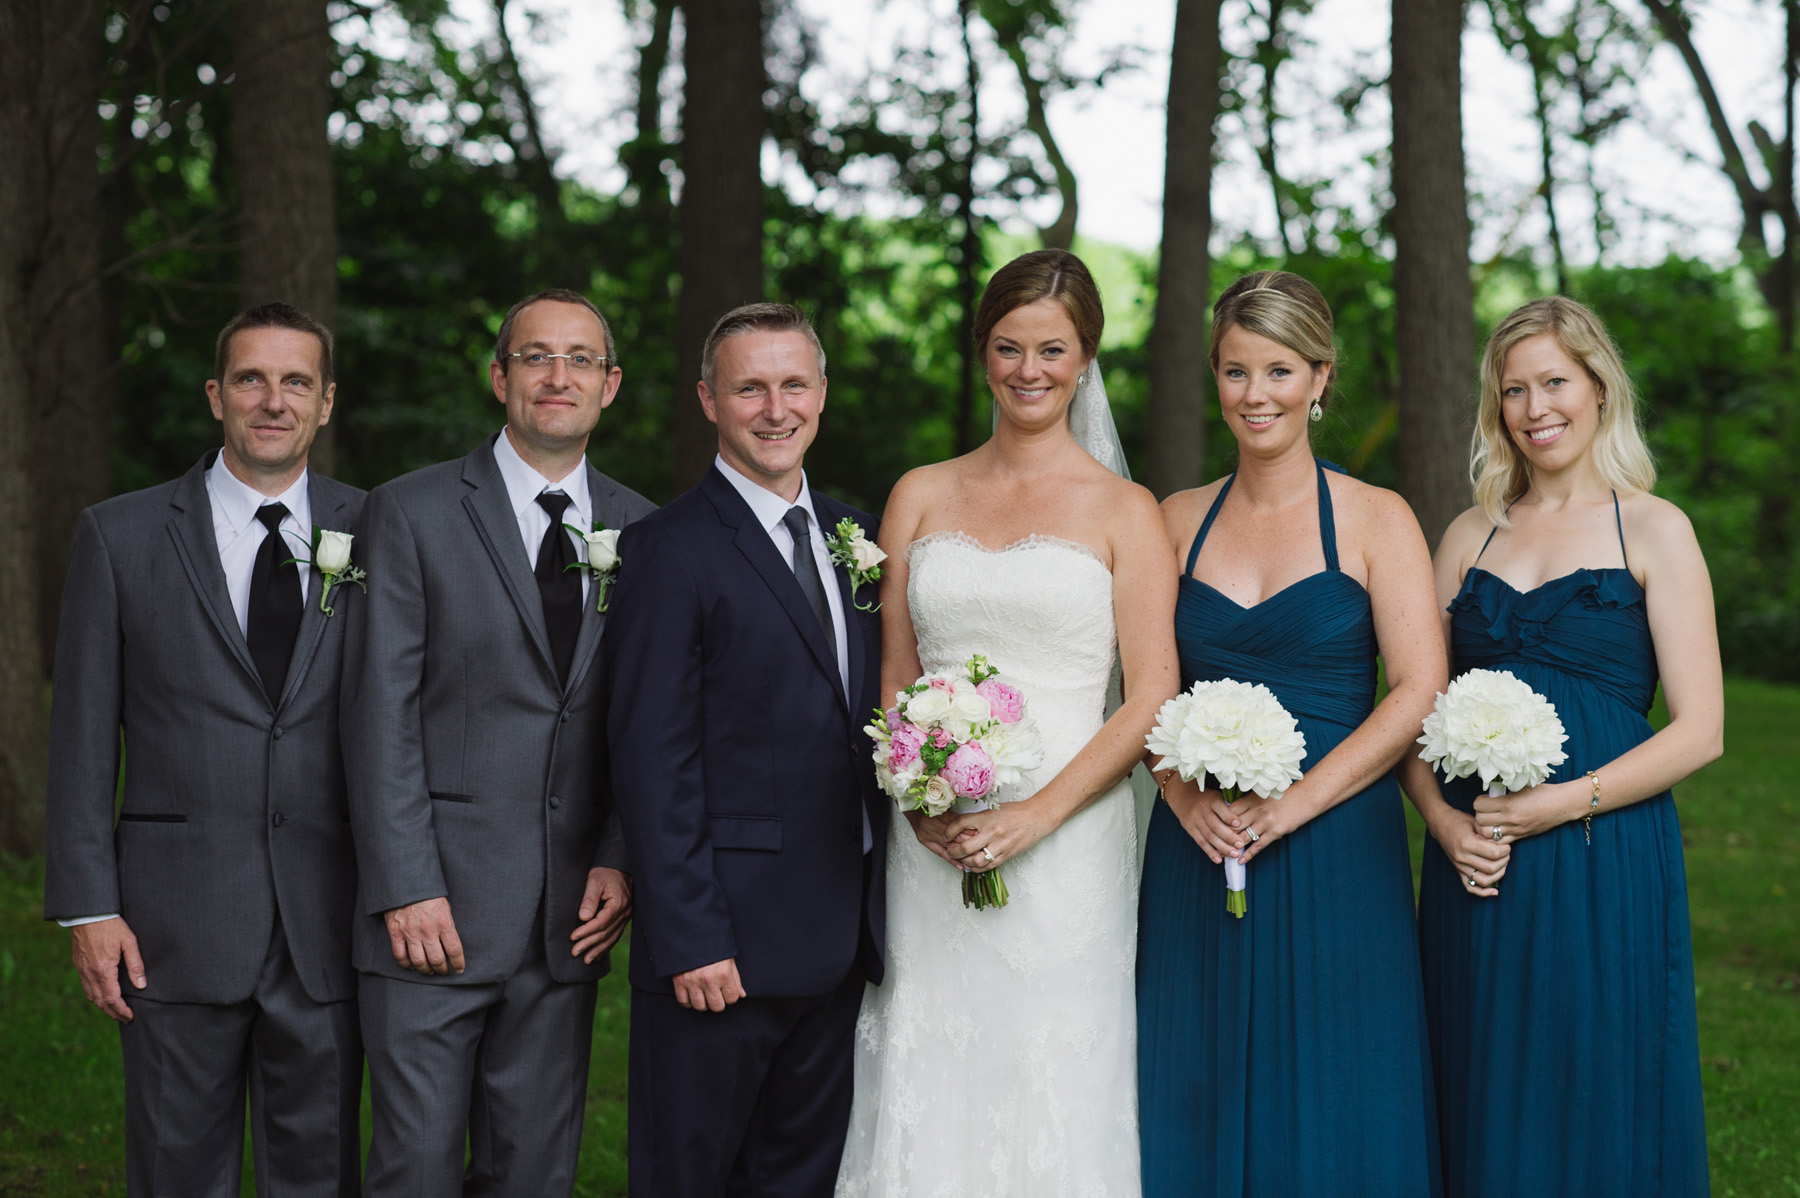 Bride and groom with their wedding party. See more at Rebecca Chan Weddings and Events http://www.rebeccachan.ca